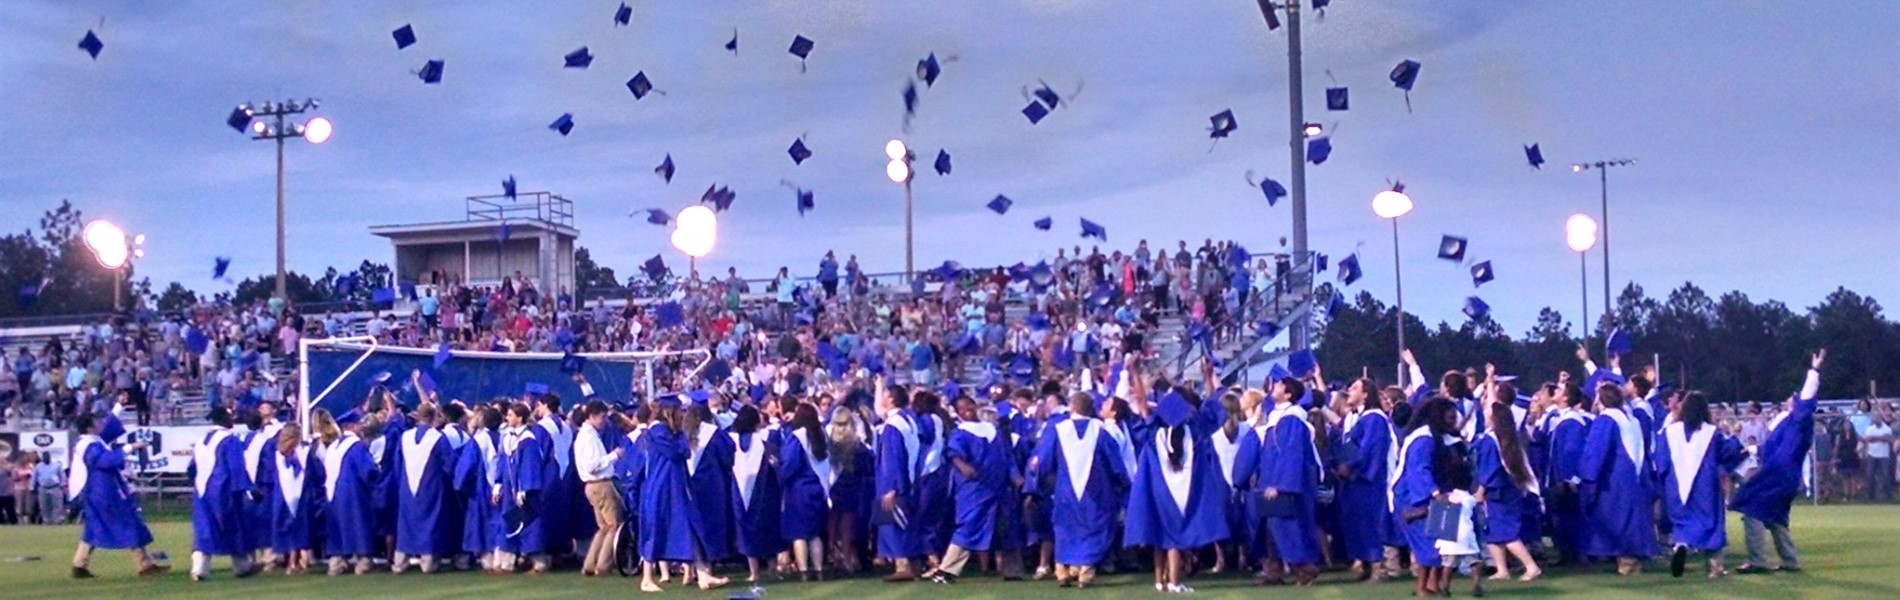 PCHS graduates throwing caps in the air